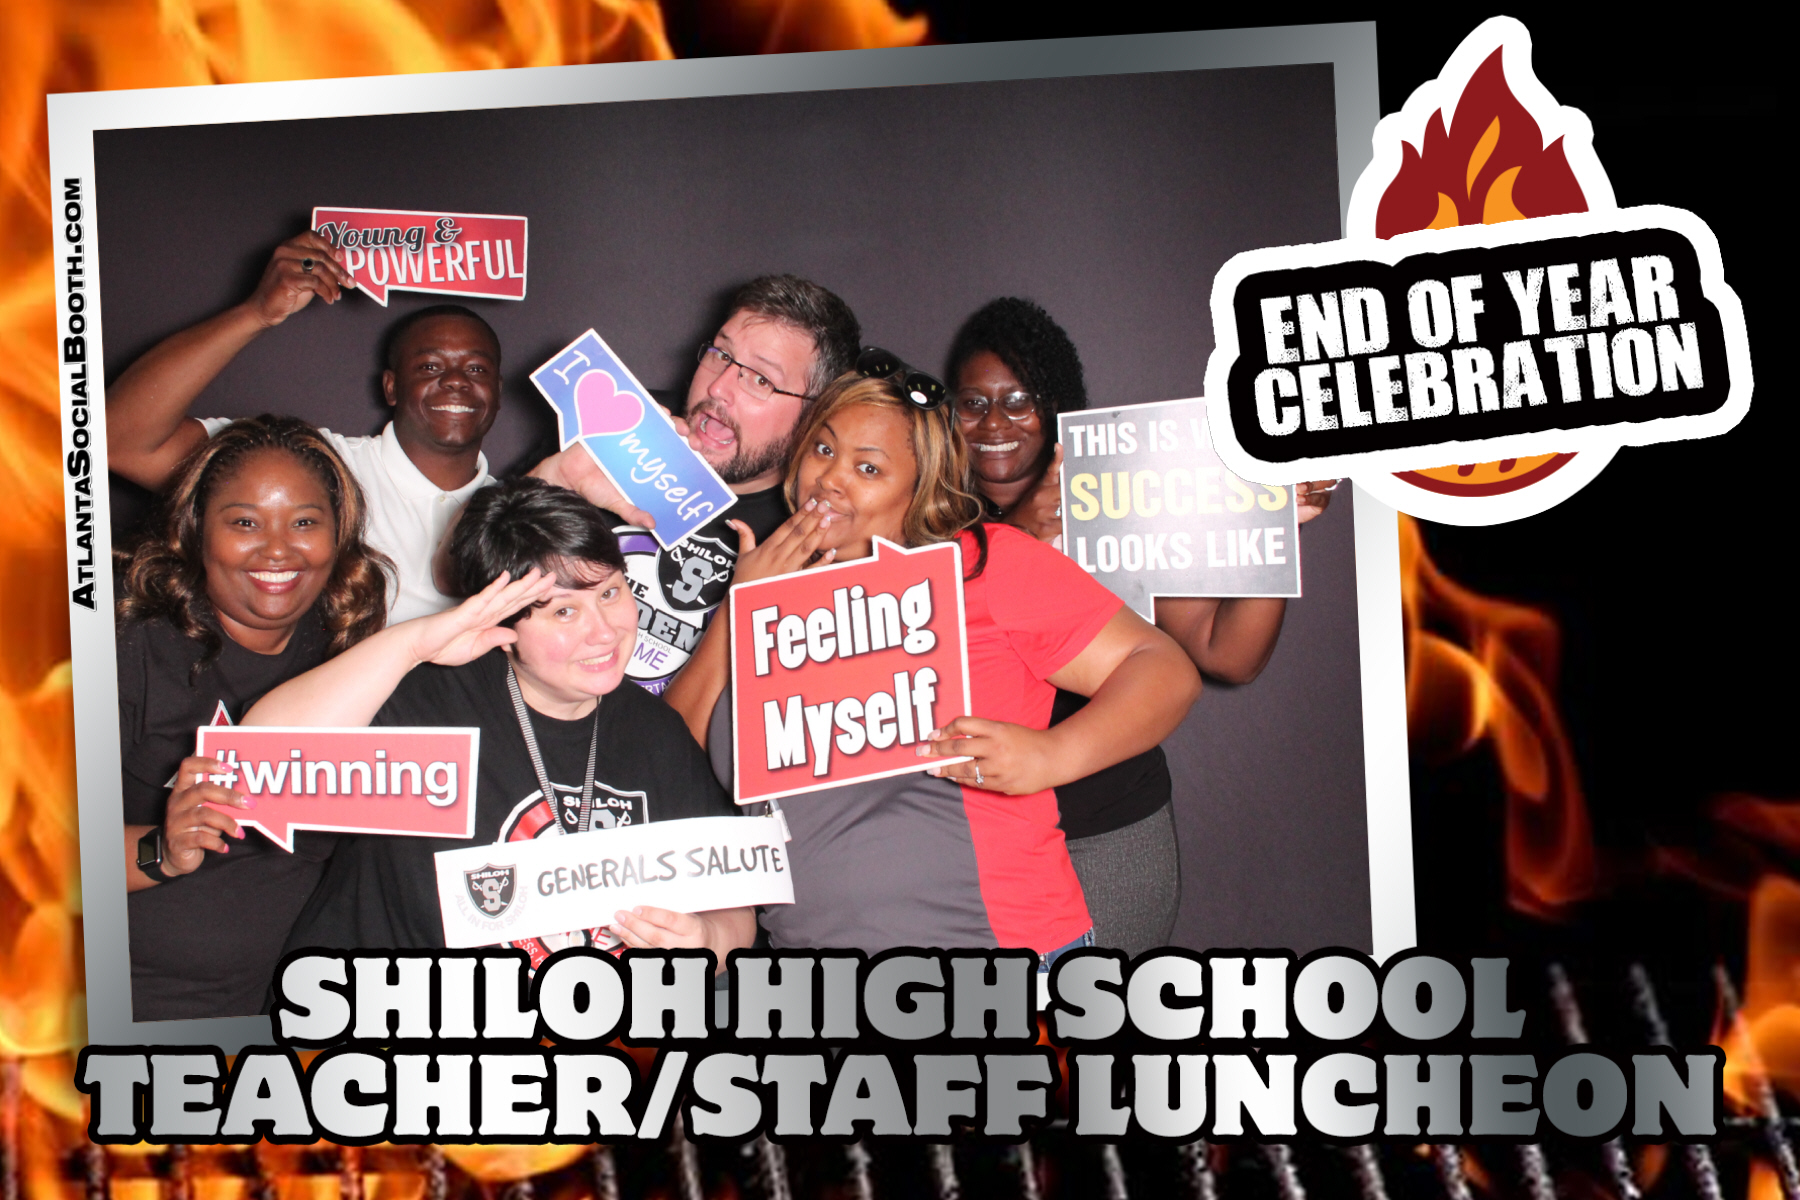 Shiloh HS Teacher/Staff Luncheon